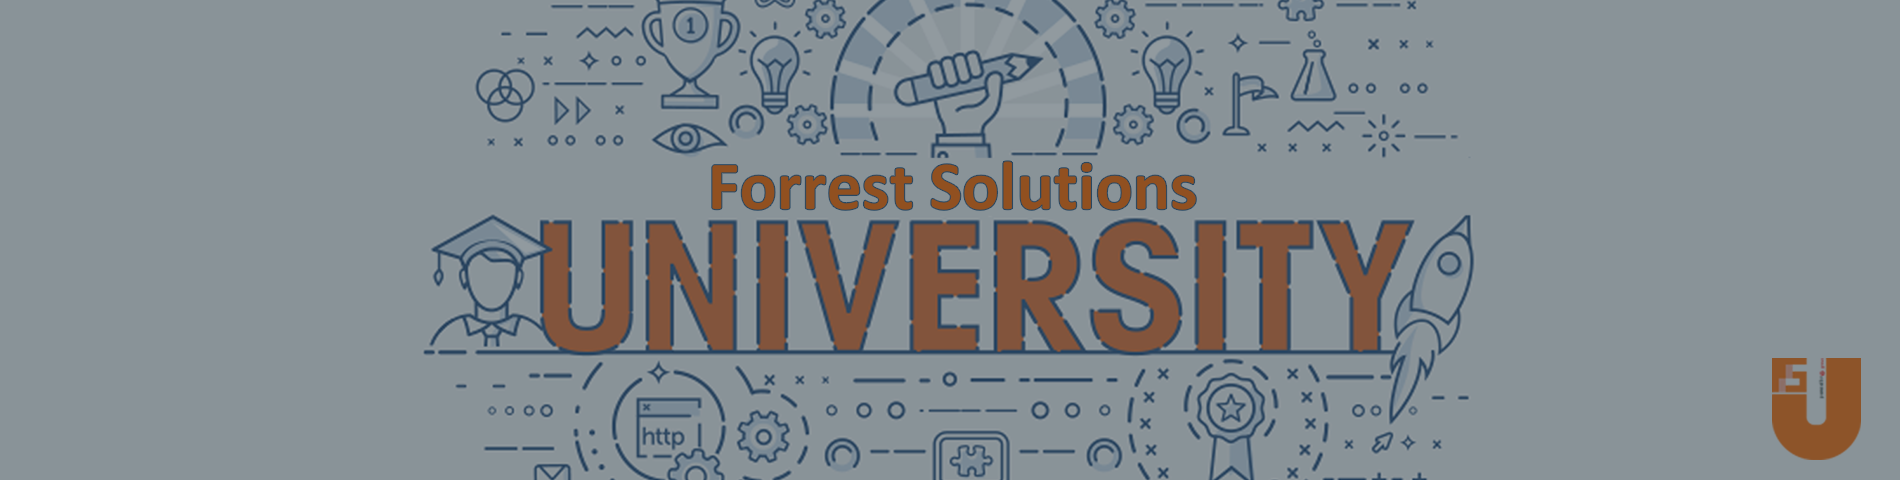 Forrest Solutions University